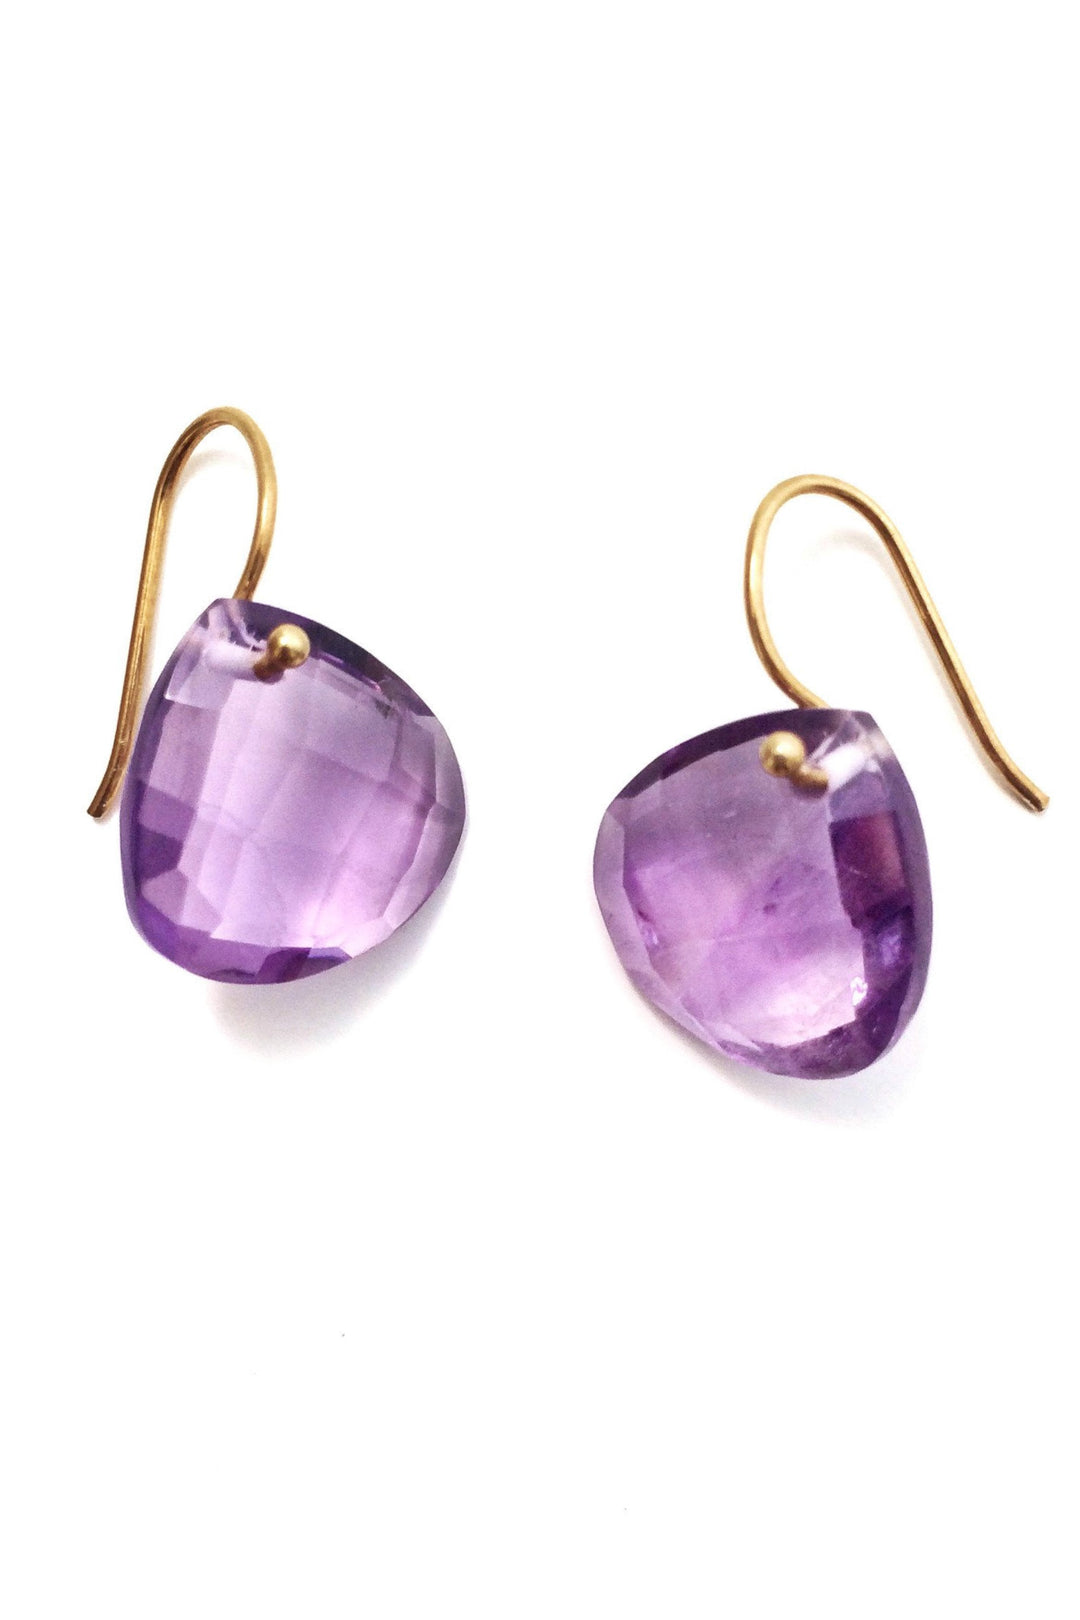 Amethyst teardrop earrings gold hook